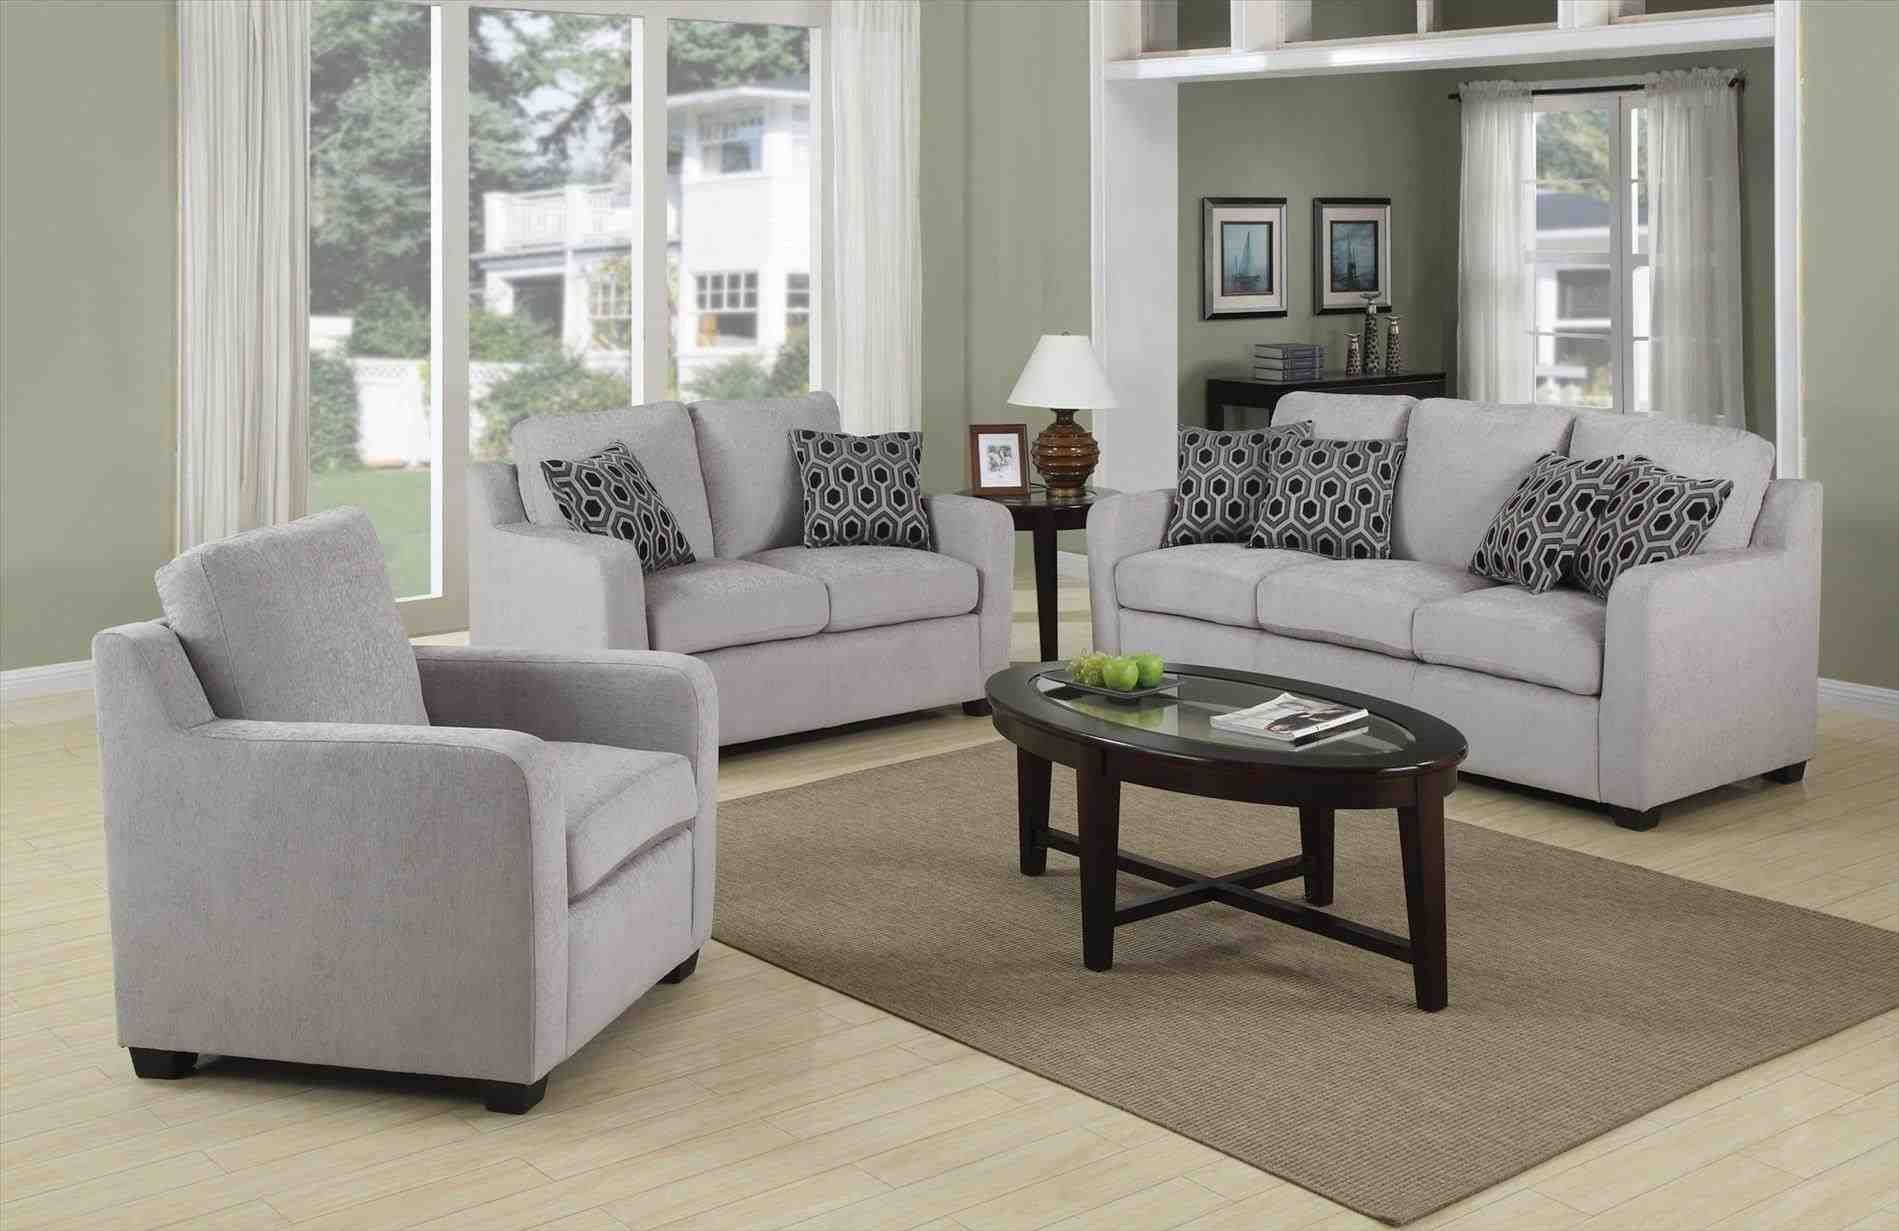 Best Cheap Sectionals In Okc Sectional Sleeper Sofa Big Lots Furniture Simmons Loveseat Full Size 640 x 480